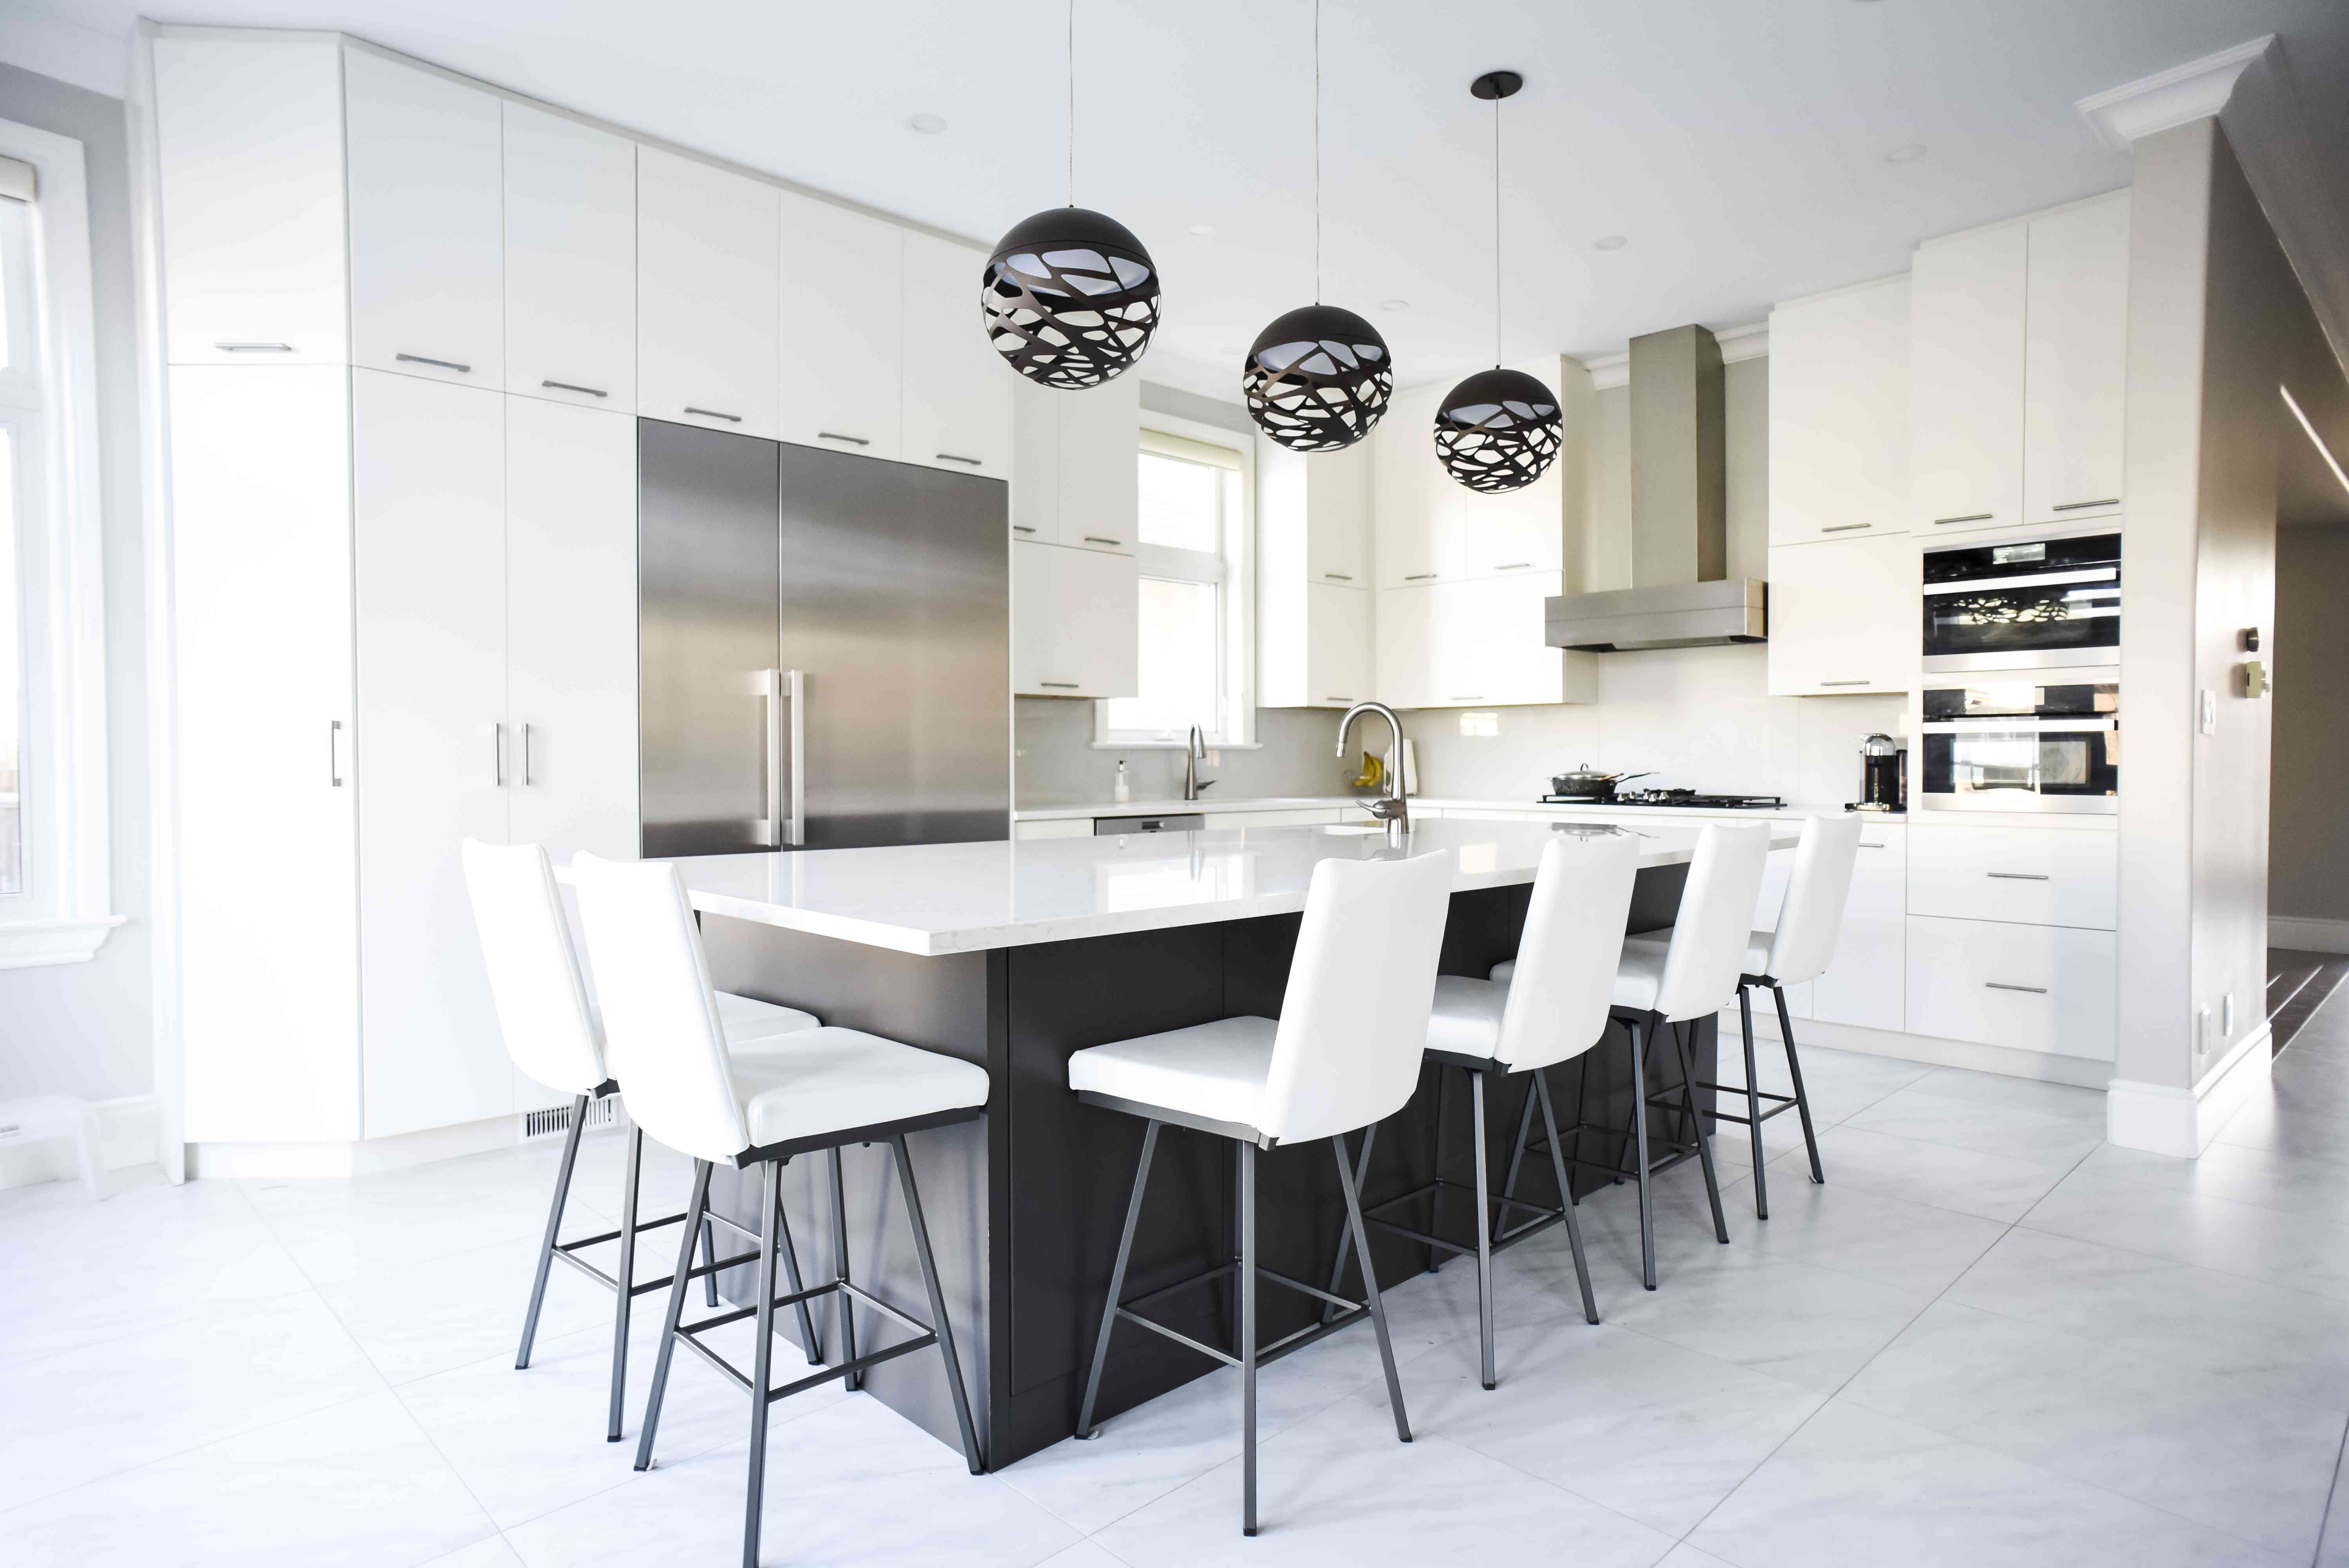 Modern white kitchen with large island and stainless steel appliances.